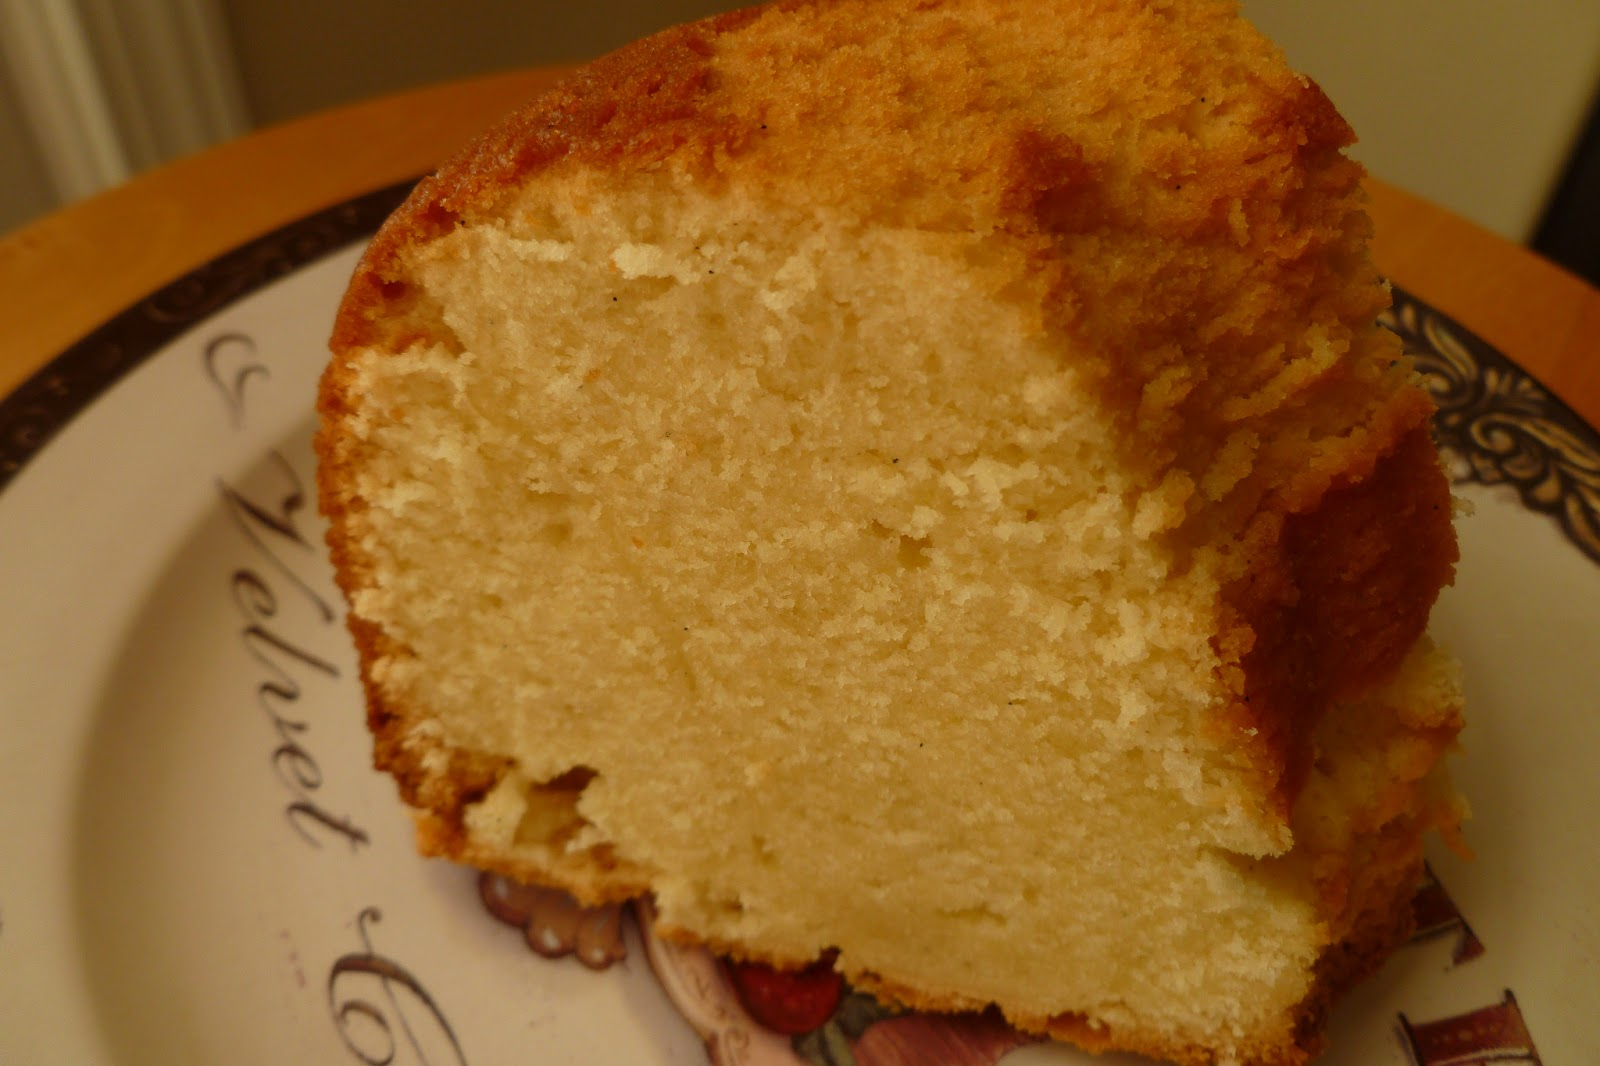 The Pastry Chef's Baking: Cream Cheese Pound Cake